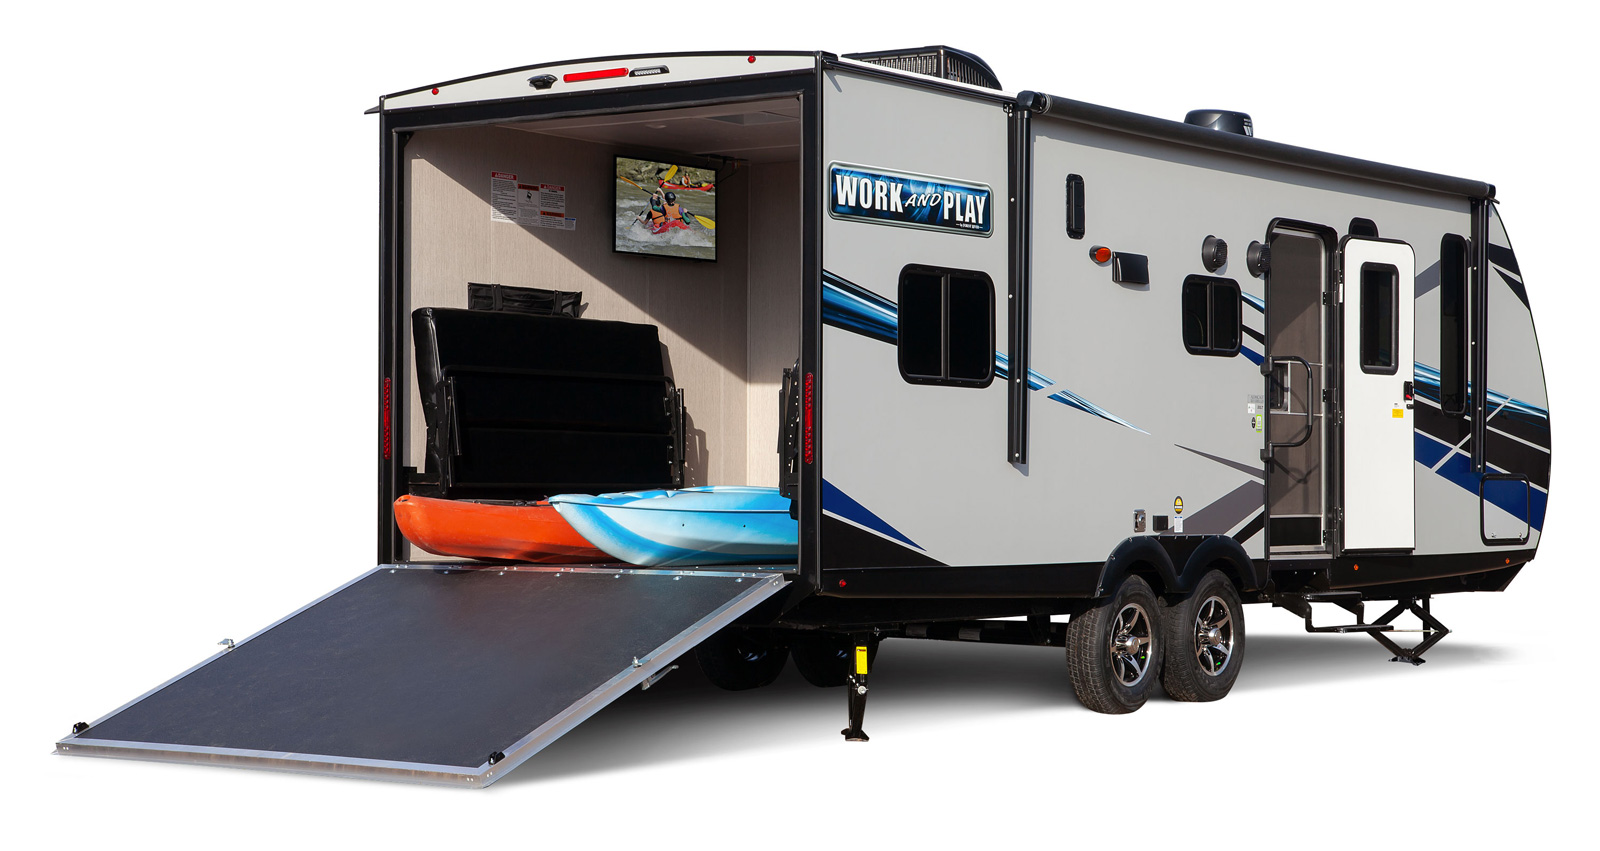 forest river work and play toy hauler exterior